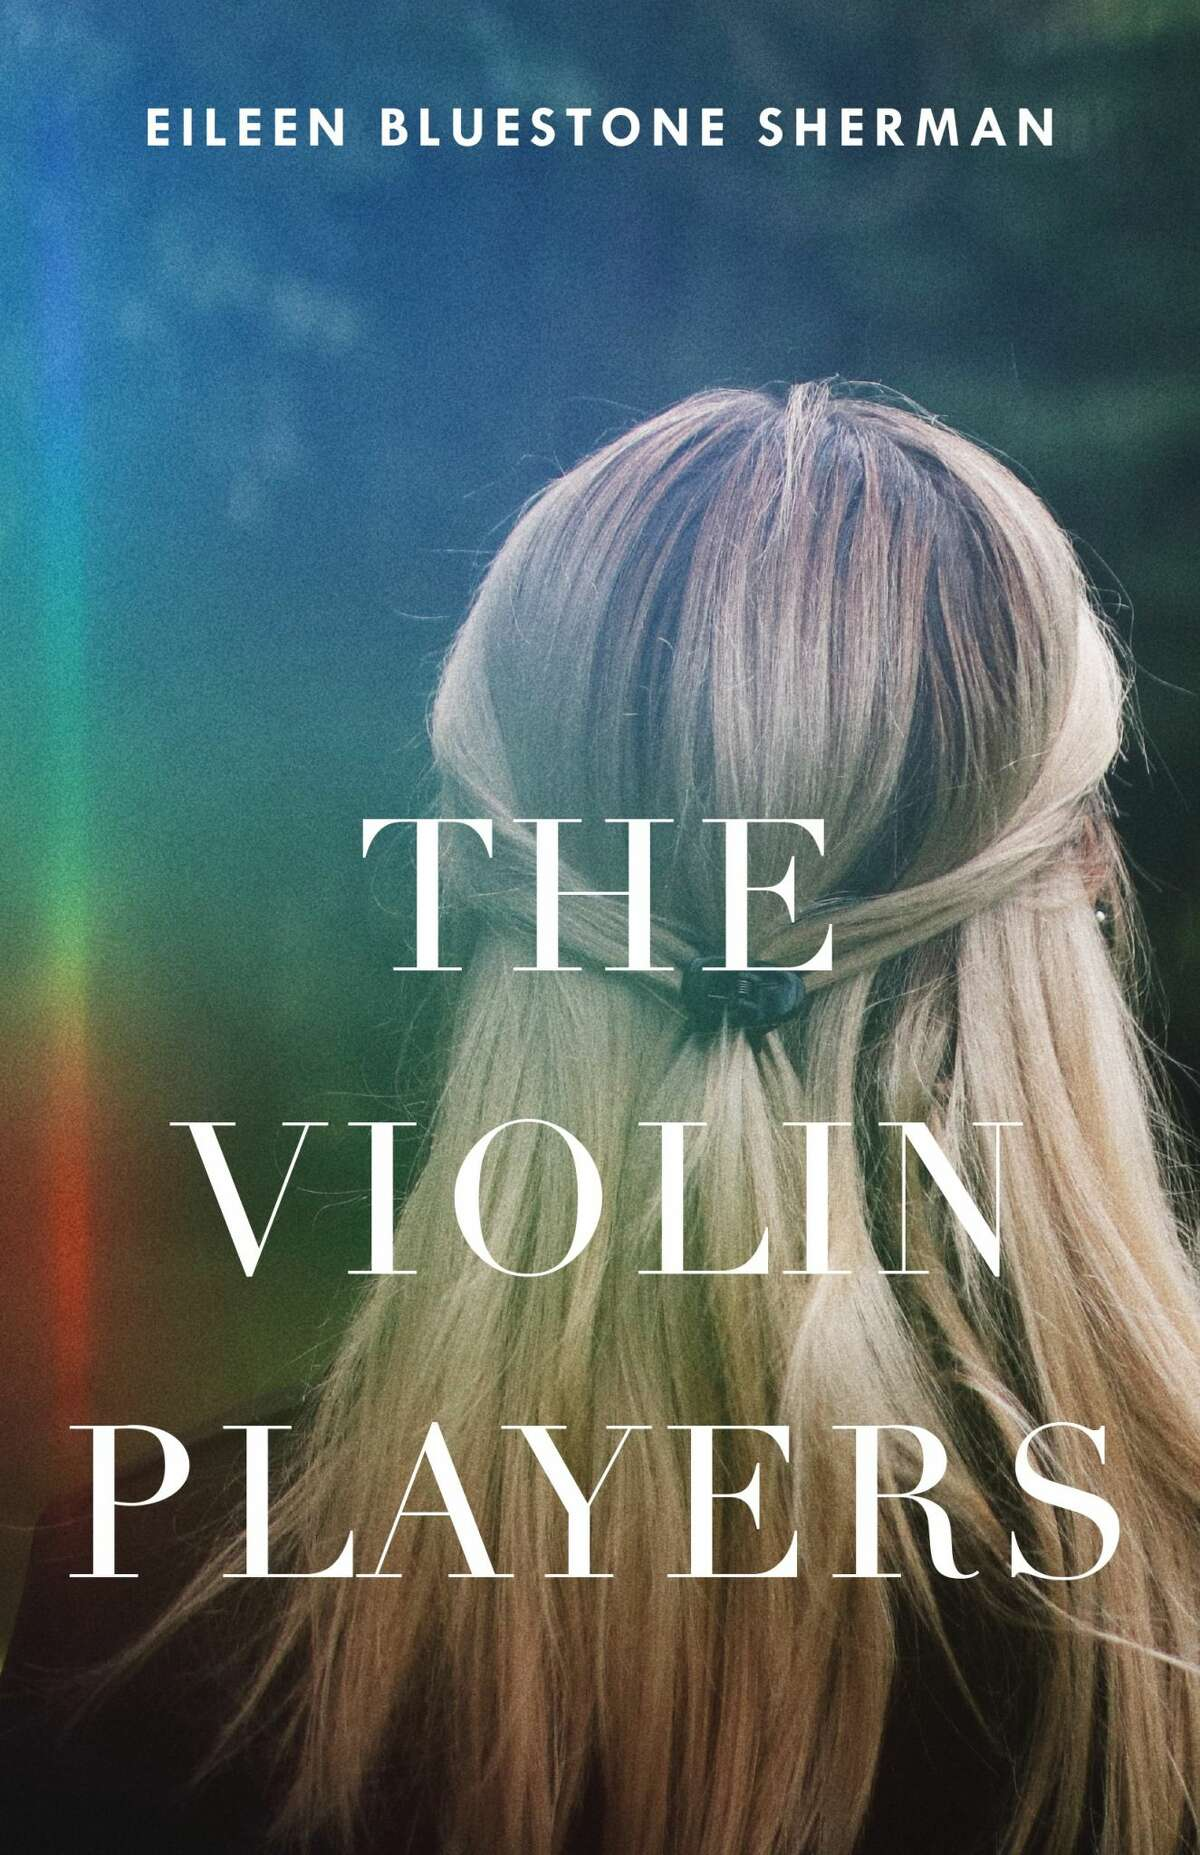 The teenage Jewish heroine of The Violin Players grew up in a non-observant, artistically accomplished and influential family. She's blonde and pretty, a talented musician and popular. Her friends don't know she's Jewish which doesn't seem like a weighty issue until she witnesses an anti-Semitic teen bully in action.